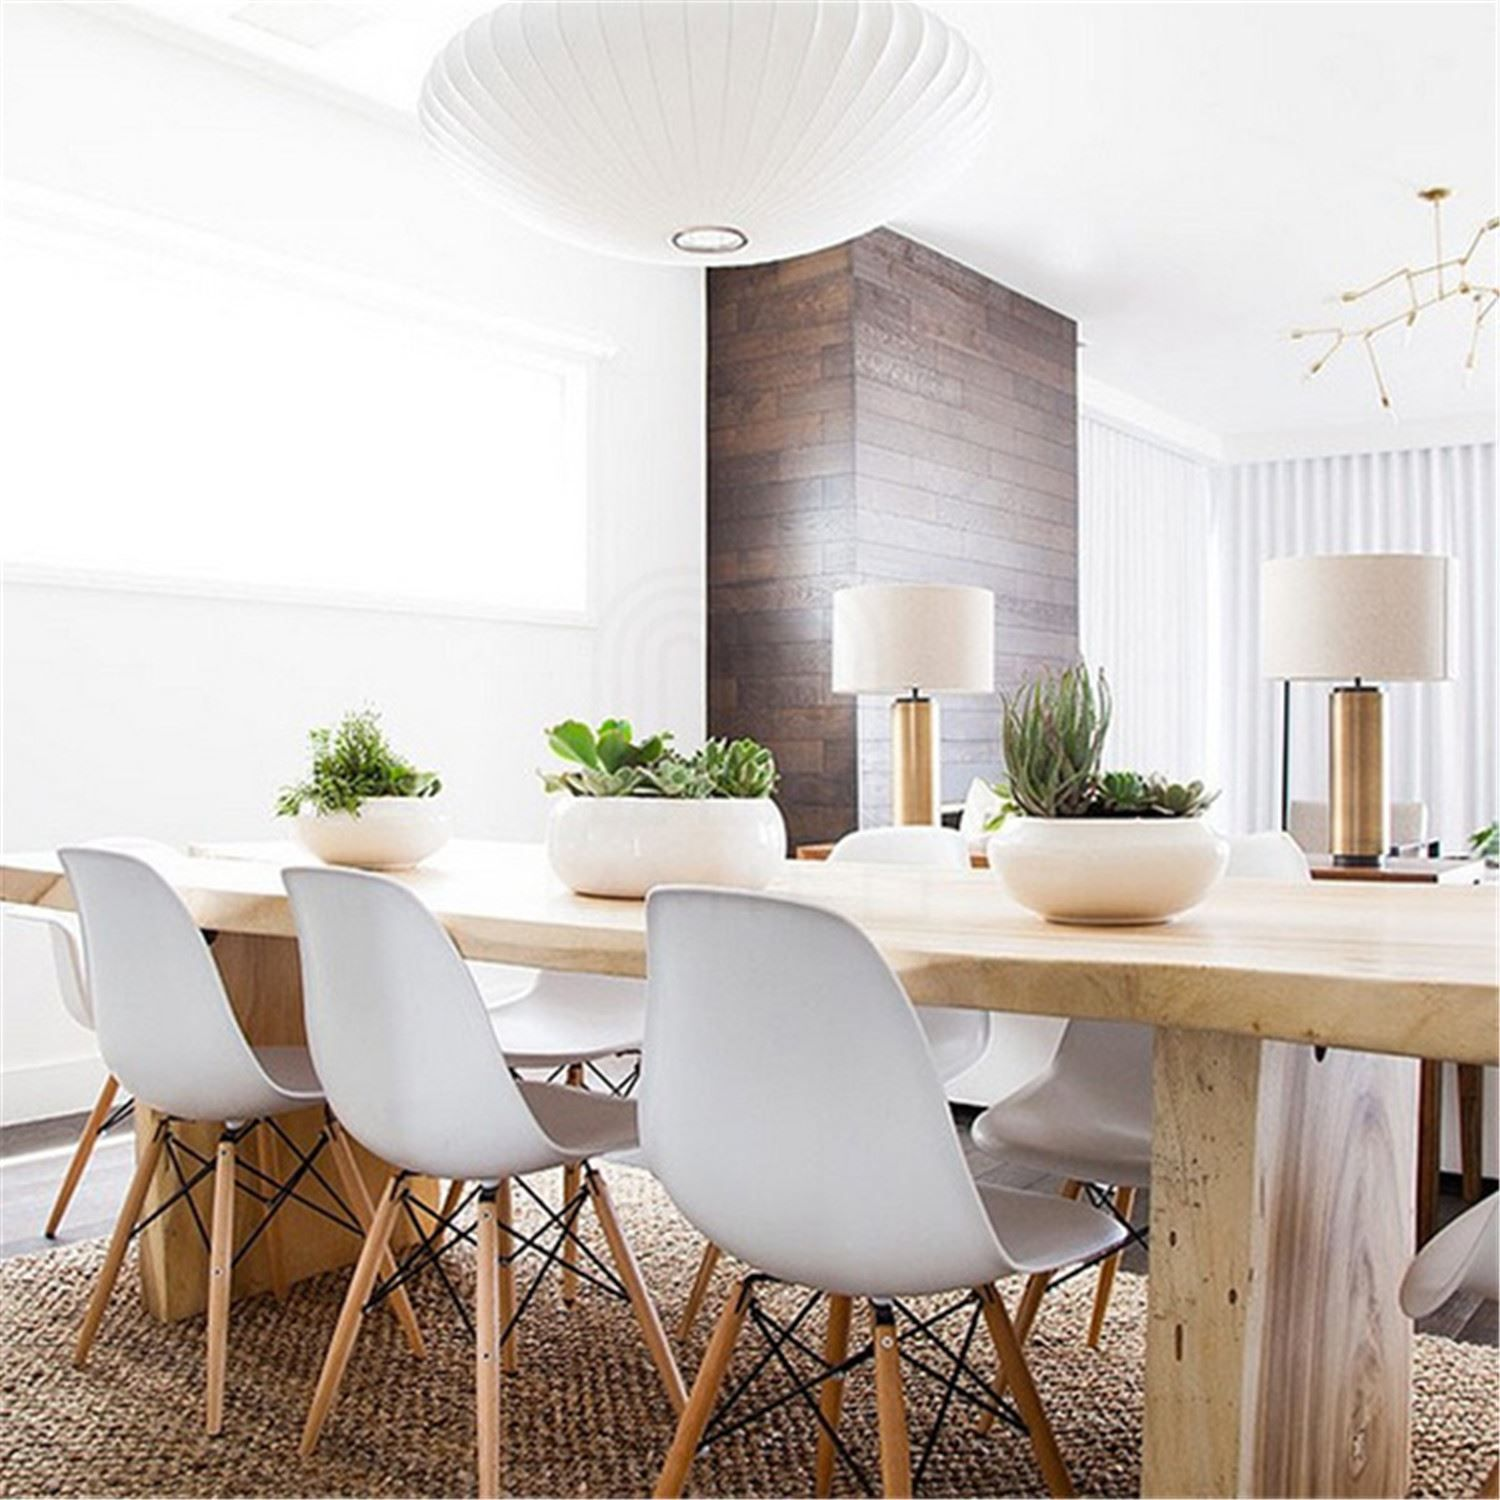 Details About Style Dsw Wood Base Mid Century Modern Shell Dining